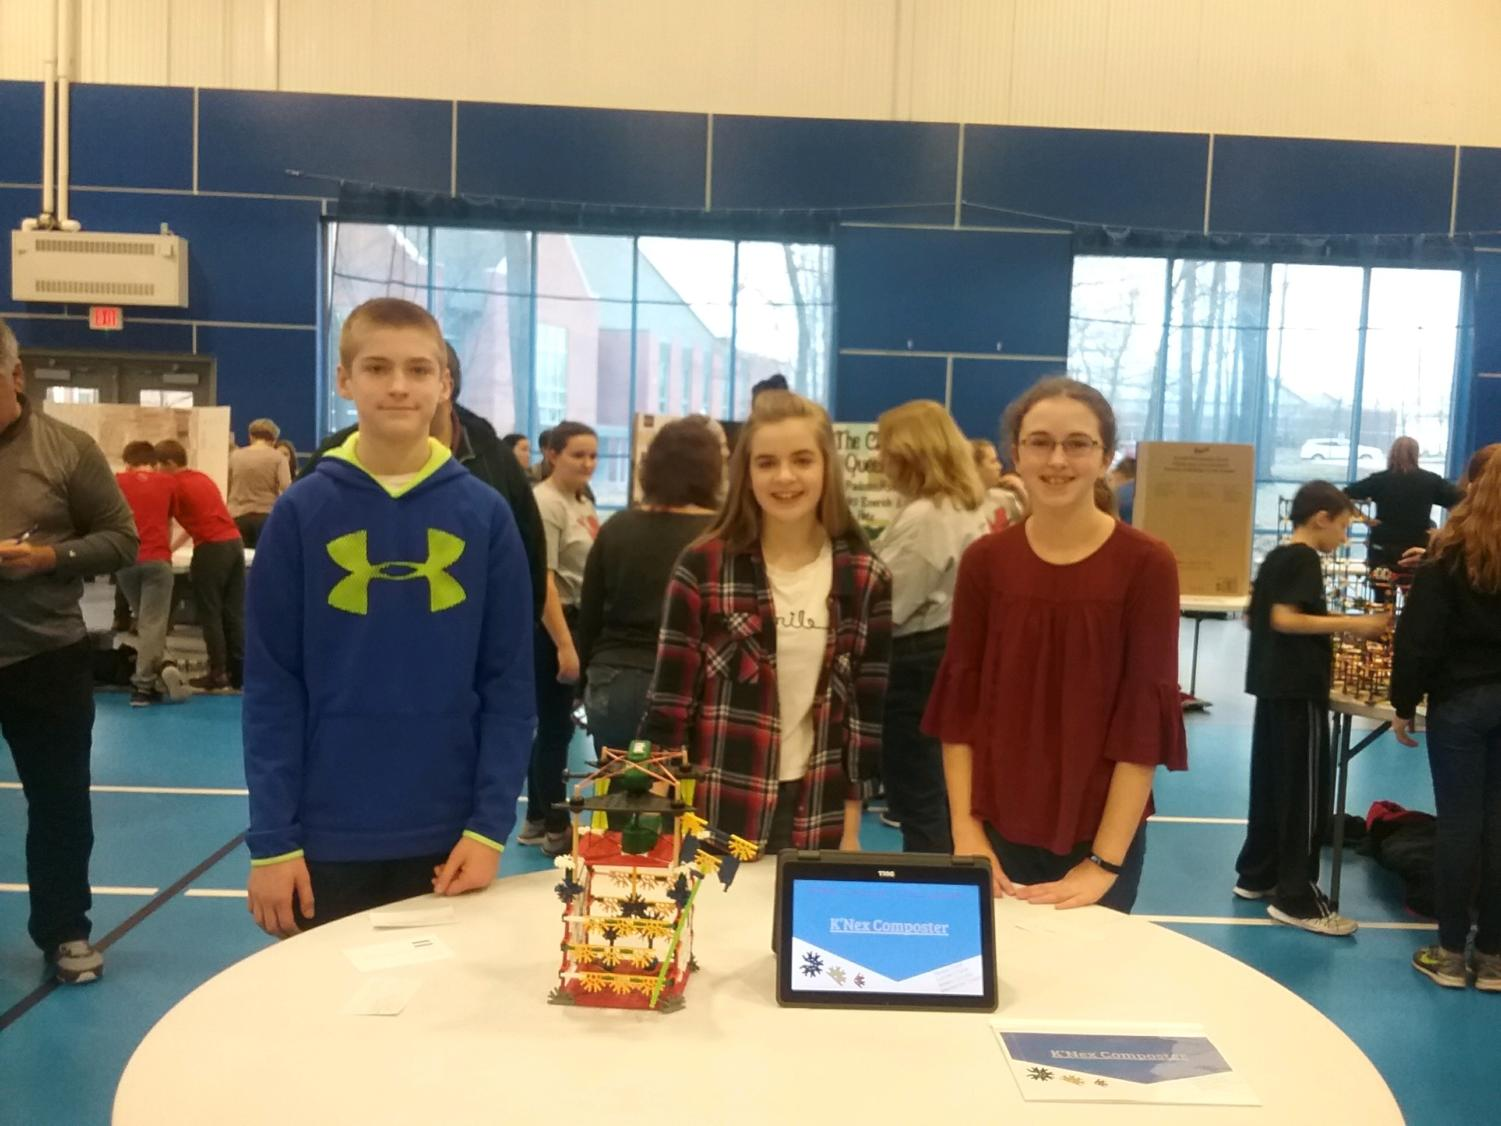 Three sevntth grade STEAM TEAM students who participated in the 2018 IU08 STEM Challenge. From left to right, the students names are Landen Fisher, Amelia Schultz and Alyssa Clark.